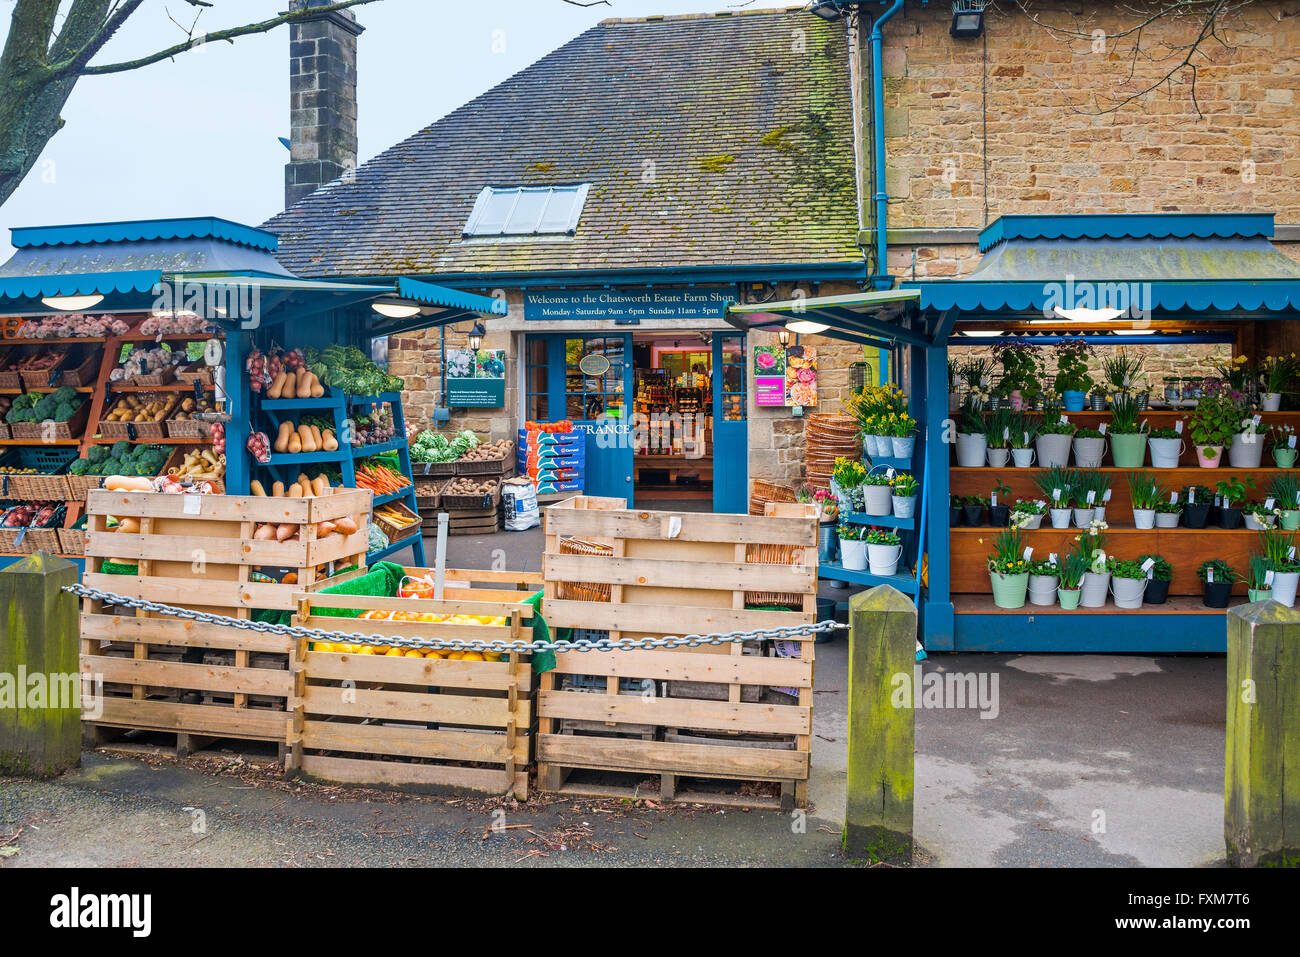 Chatsworth Farm Shop, exterior, with fruit, vegetable and flower stalls - Stock Image